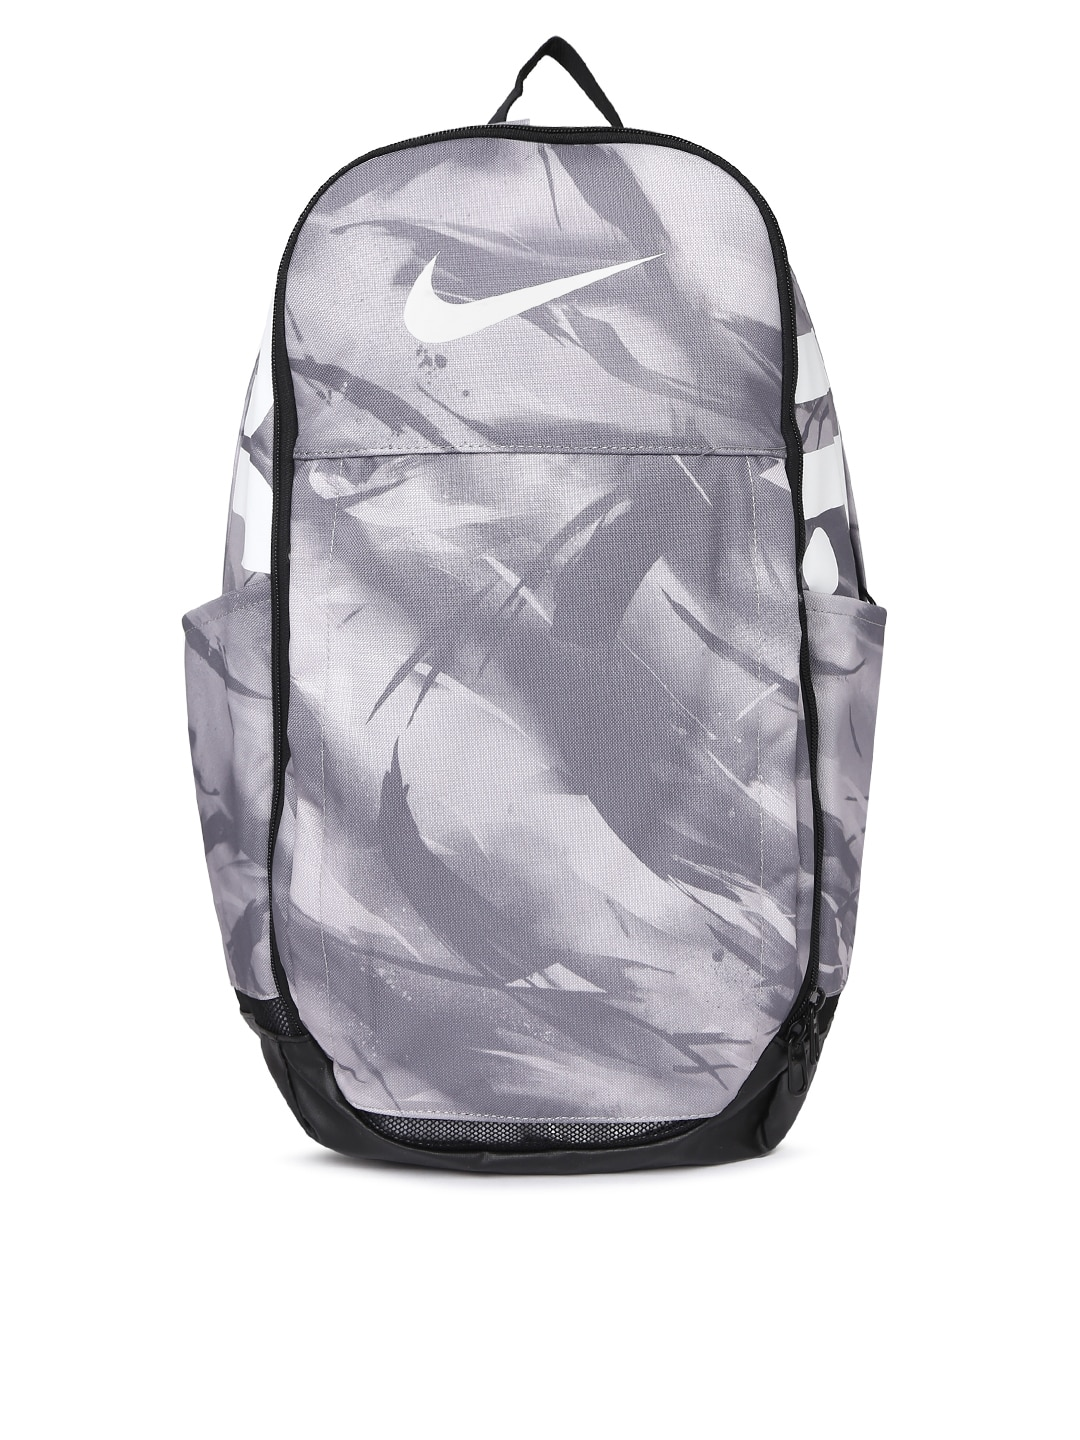 ca1d1062b7a8 Dungarees Backpacks - Buy Dungarees Backpacks online in India